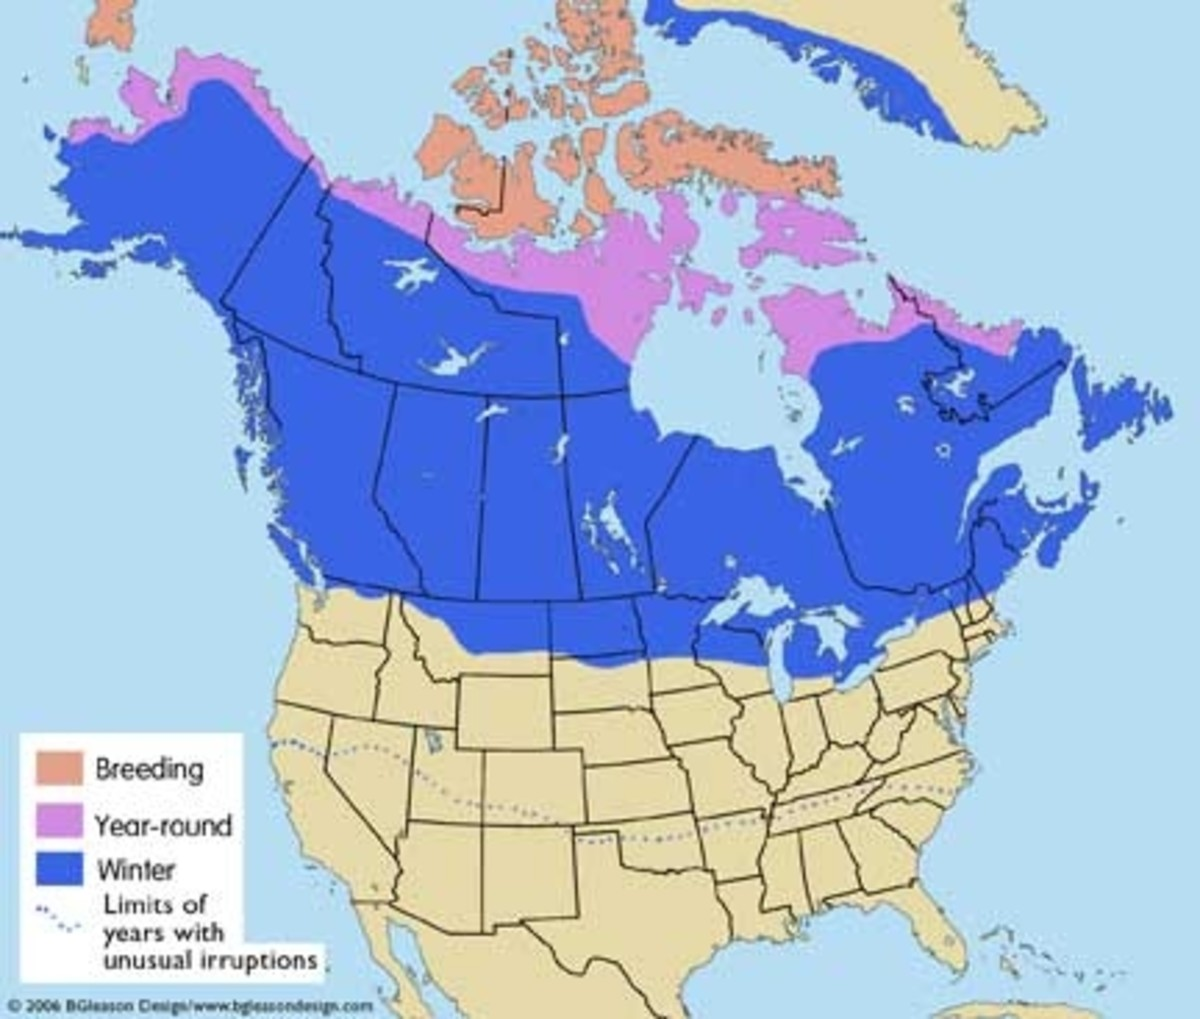 North American range of the Snowy Owl.